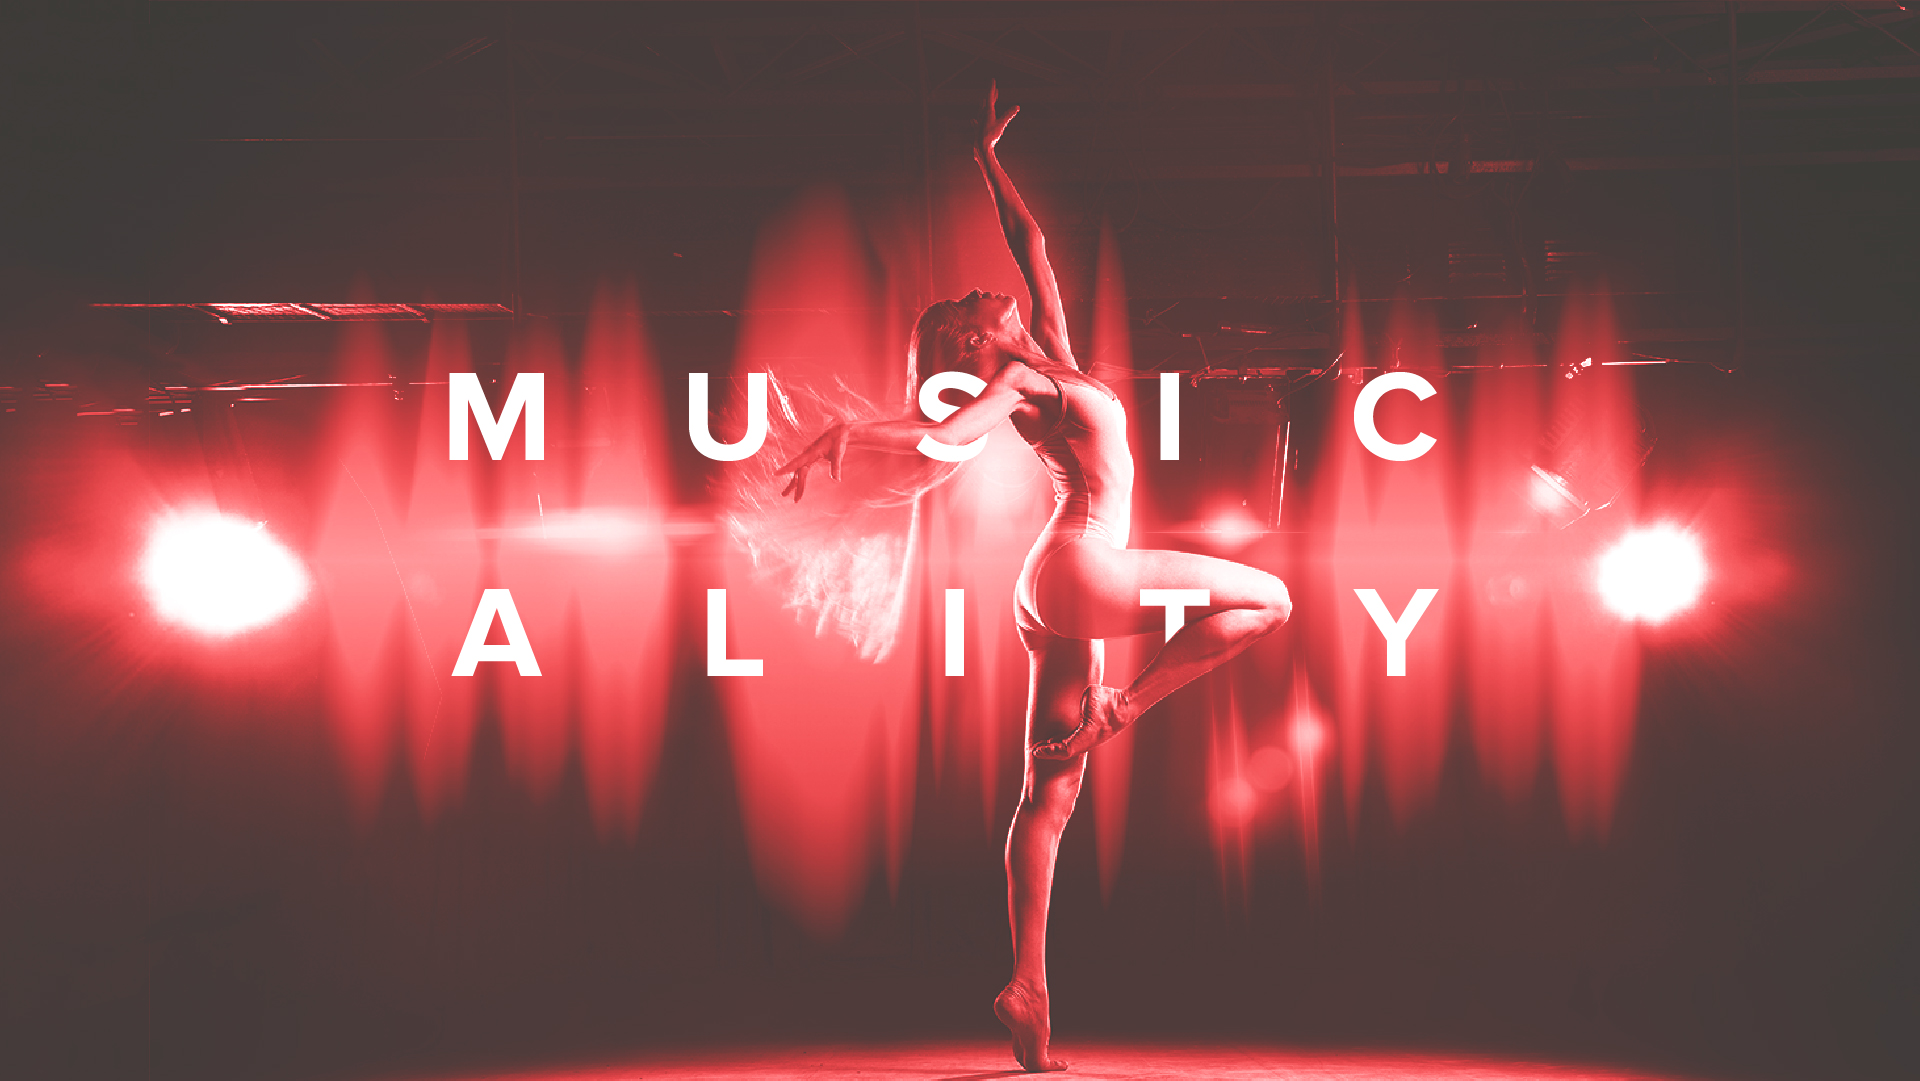 Thoughts on Musicality